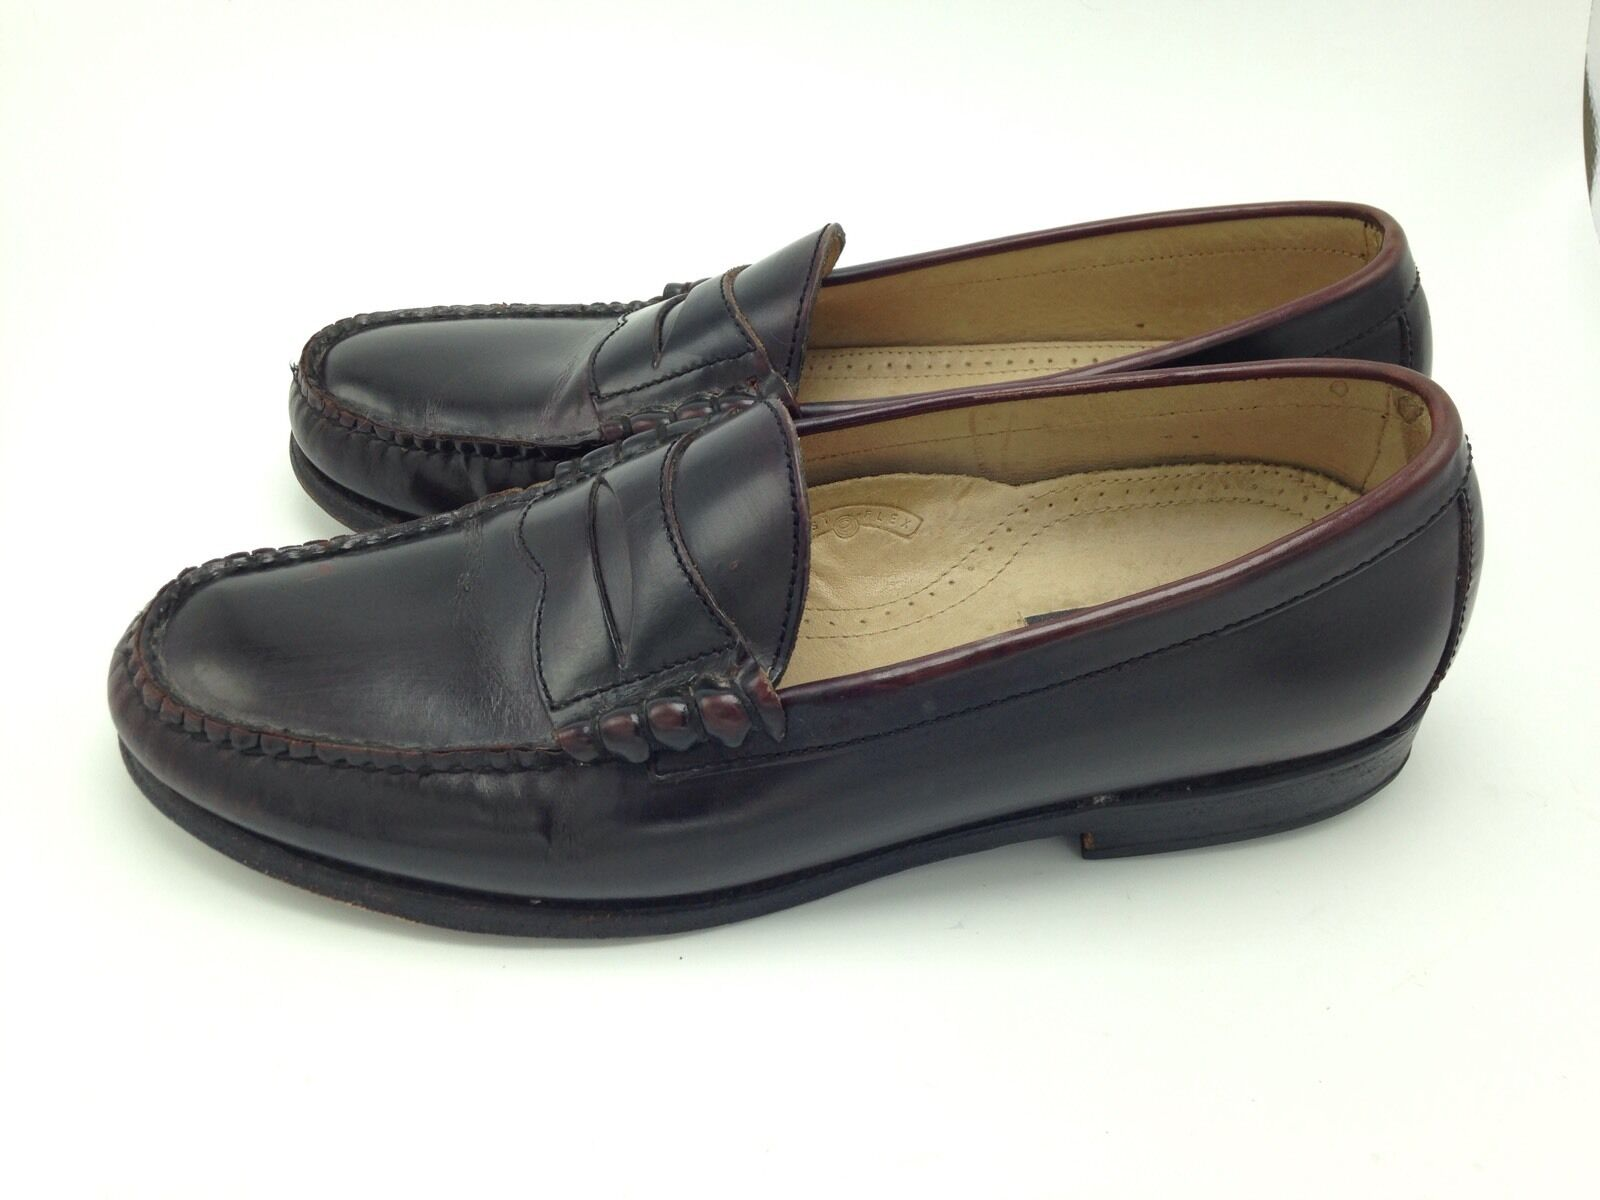 Bostonian 10.5 D Crown Windsor Brown All Leather Penny Loafer First Flex Brazil